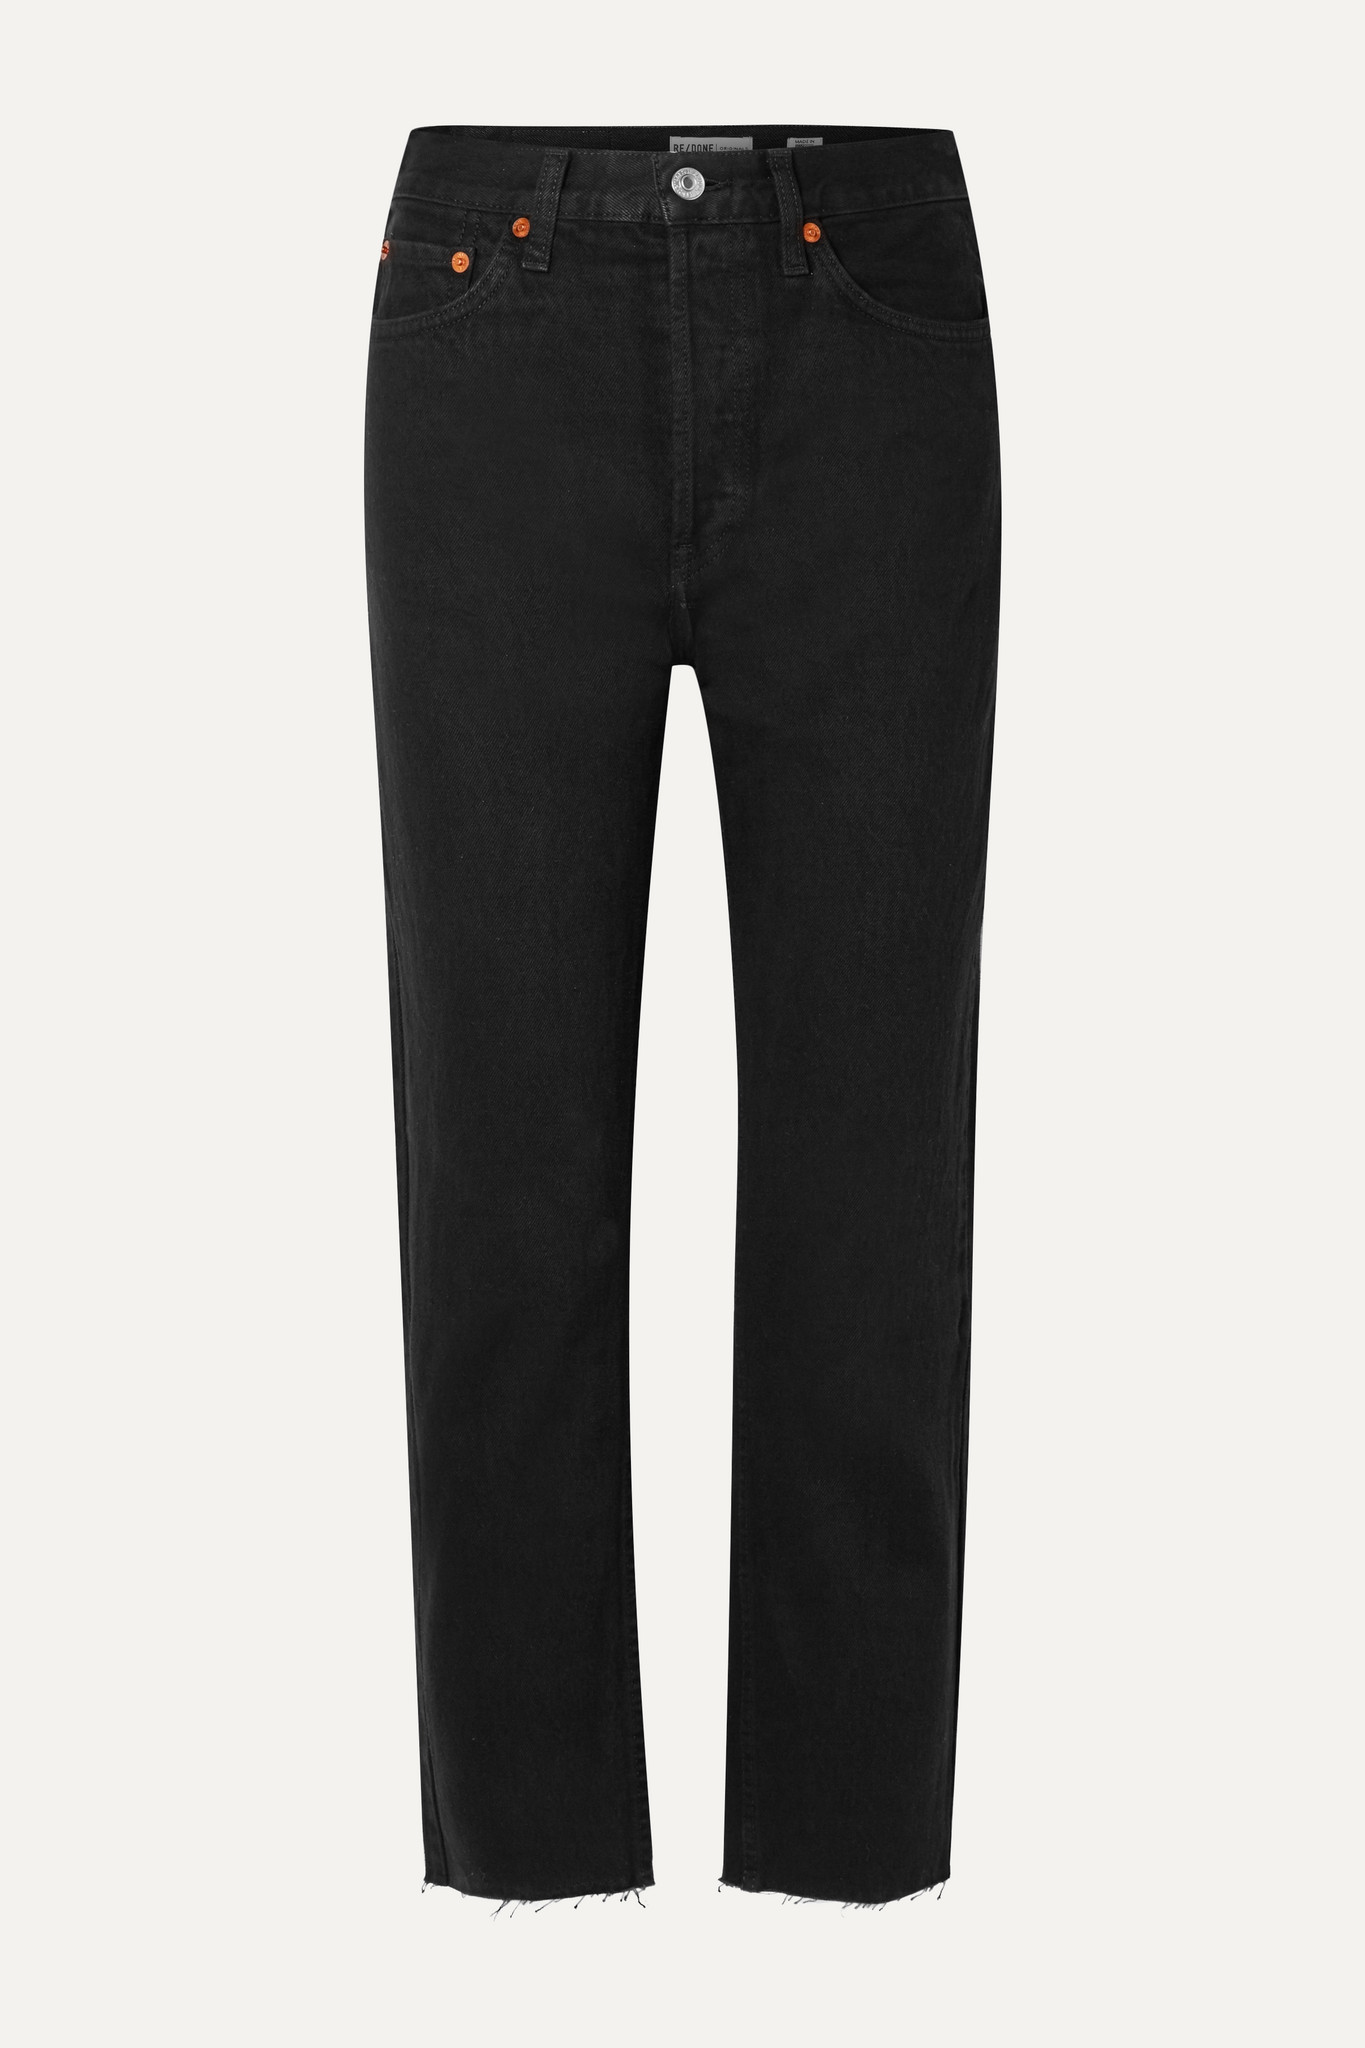 RE/DONE - Originals Stove Pipe High-rise Straight-leg Jeans - Black - 24